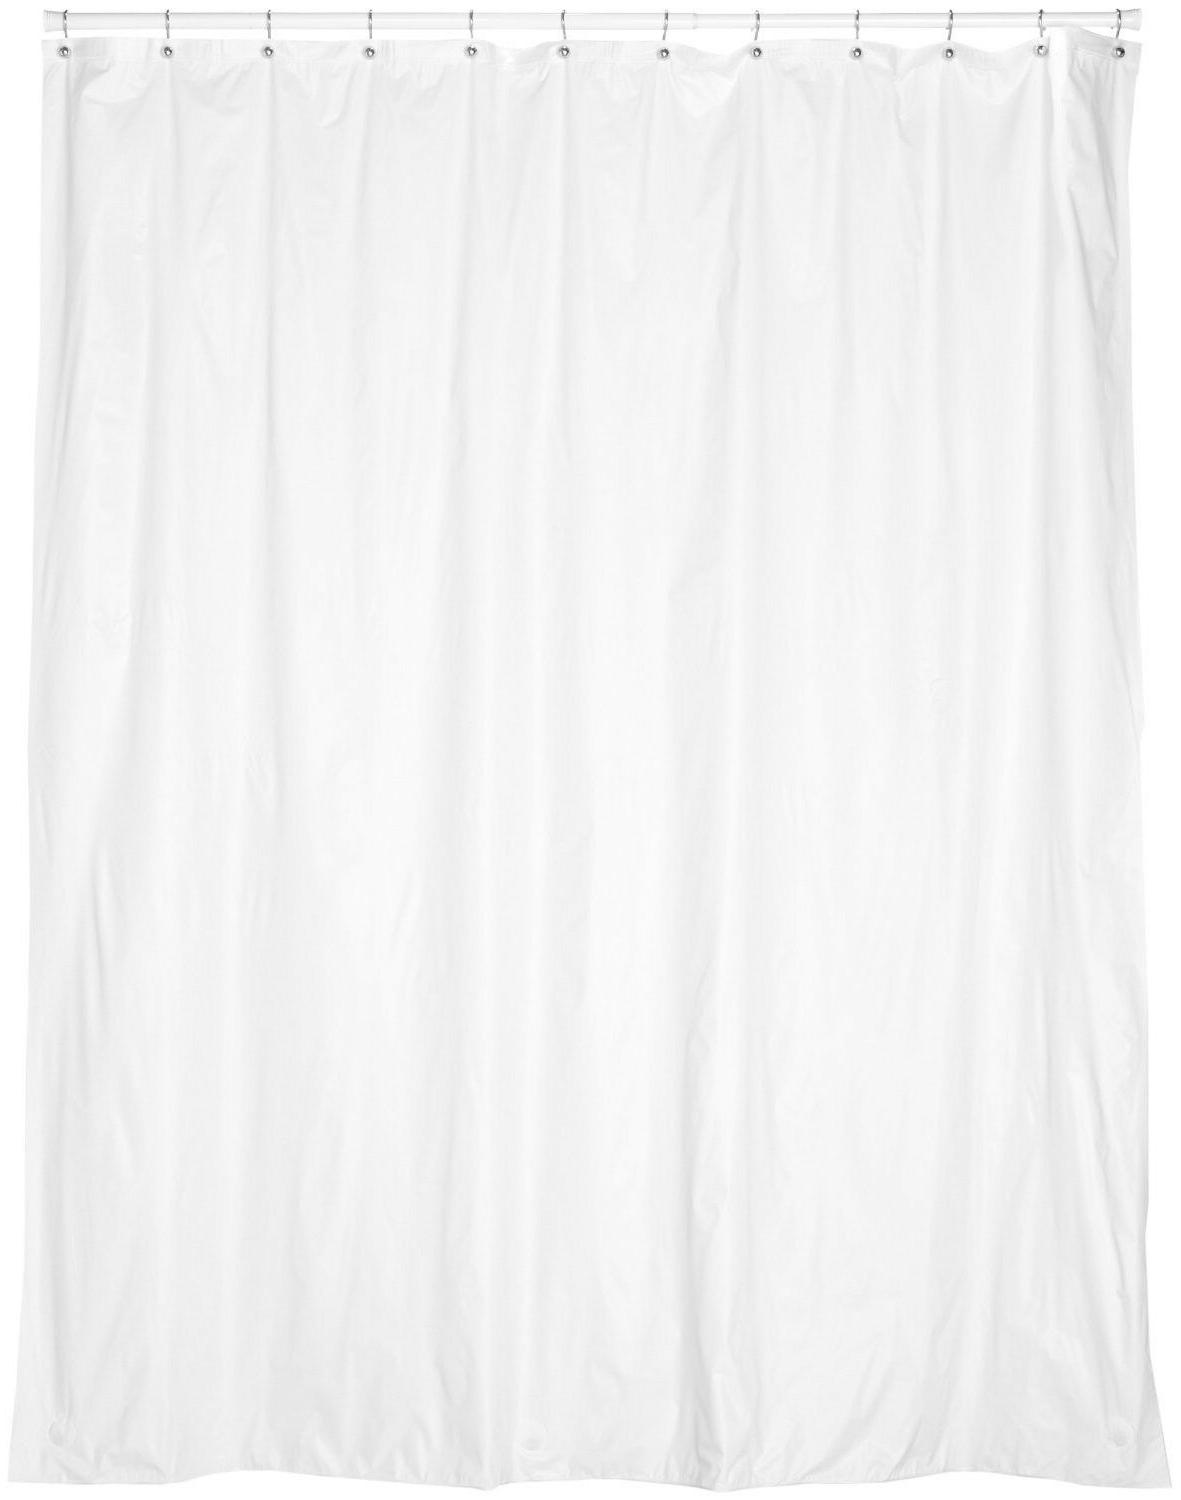 """EXTRA x 84"""" SHOWER CURTAIN Liner"""